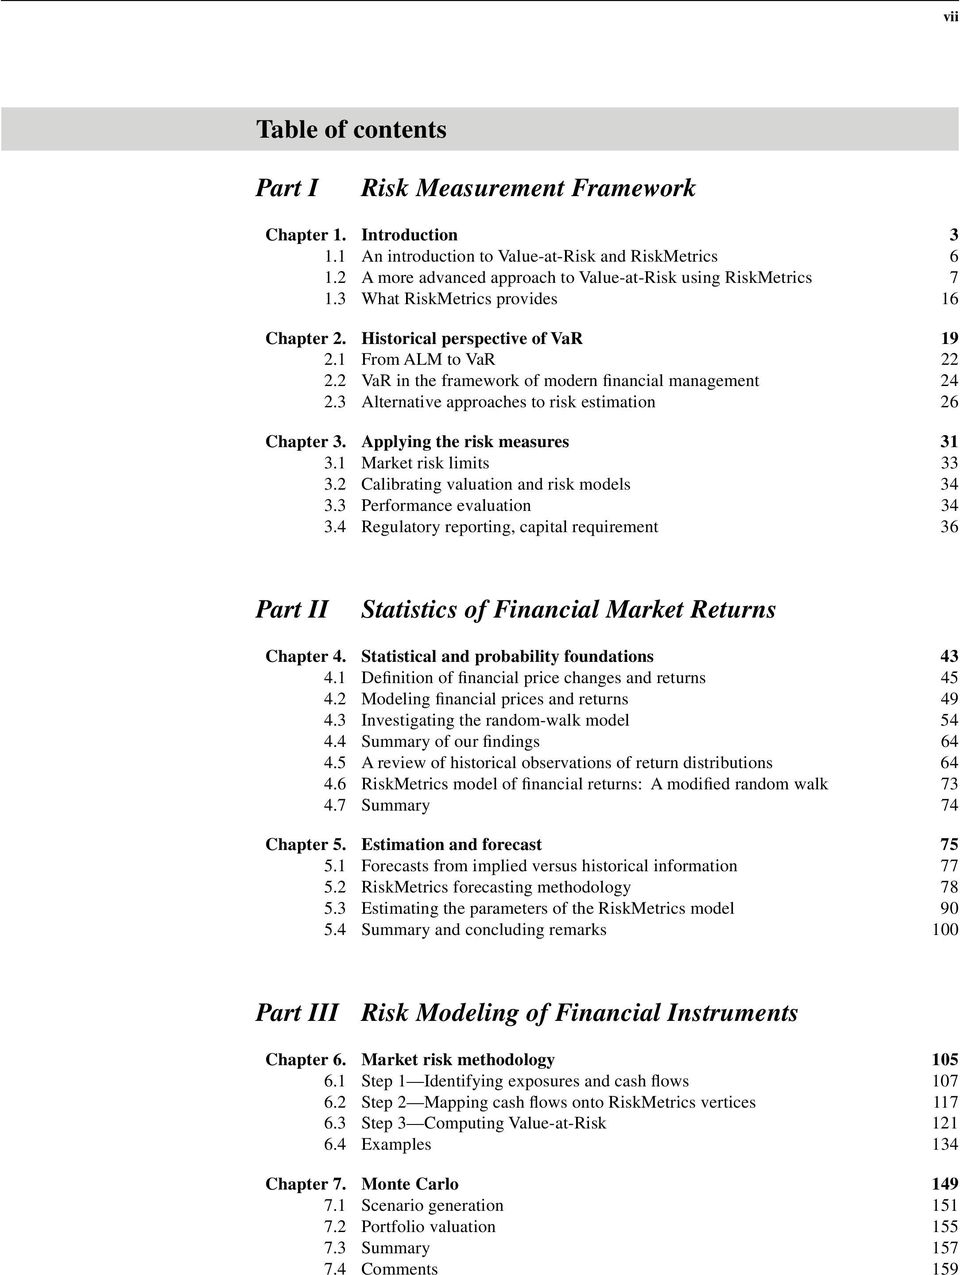 2 VaR in the framework of modern financial management 24 2.3 Alternative approaches to risk estimation 26 Chapter 3. Applying the risk measures 31 3.1 Market risk limits 33 3.